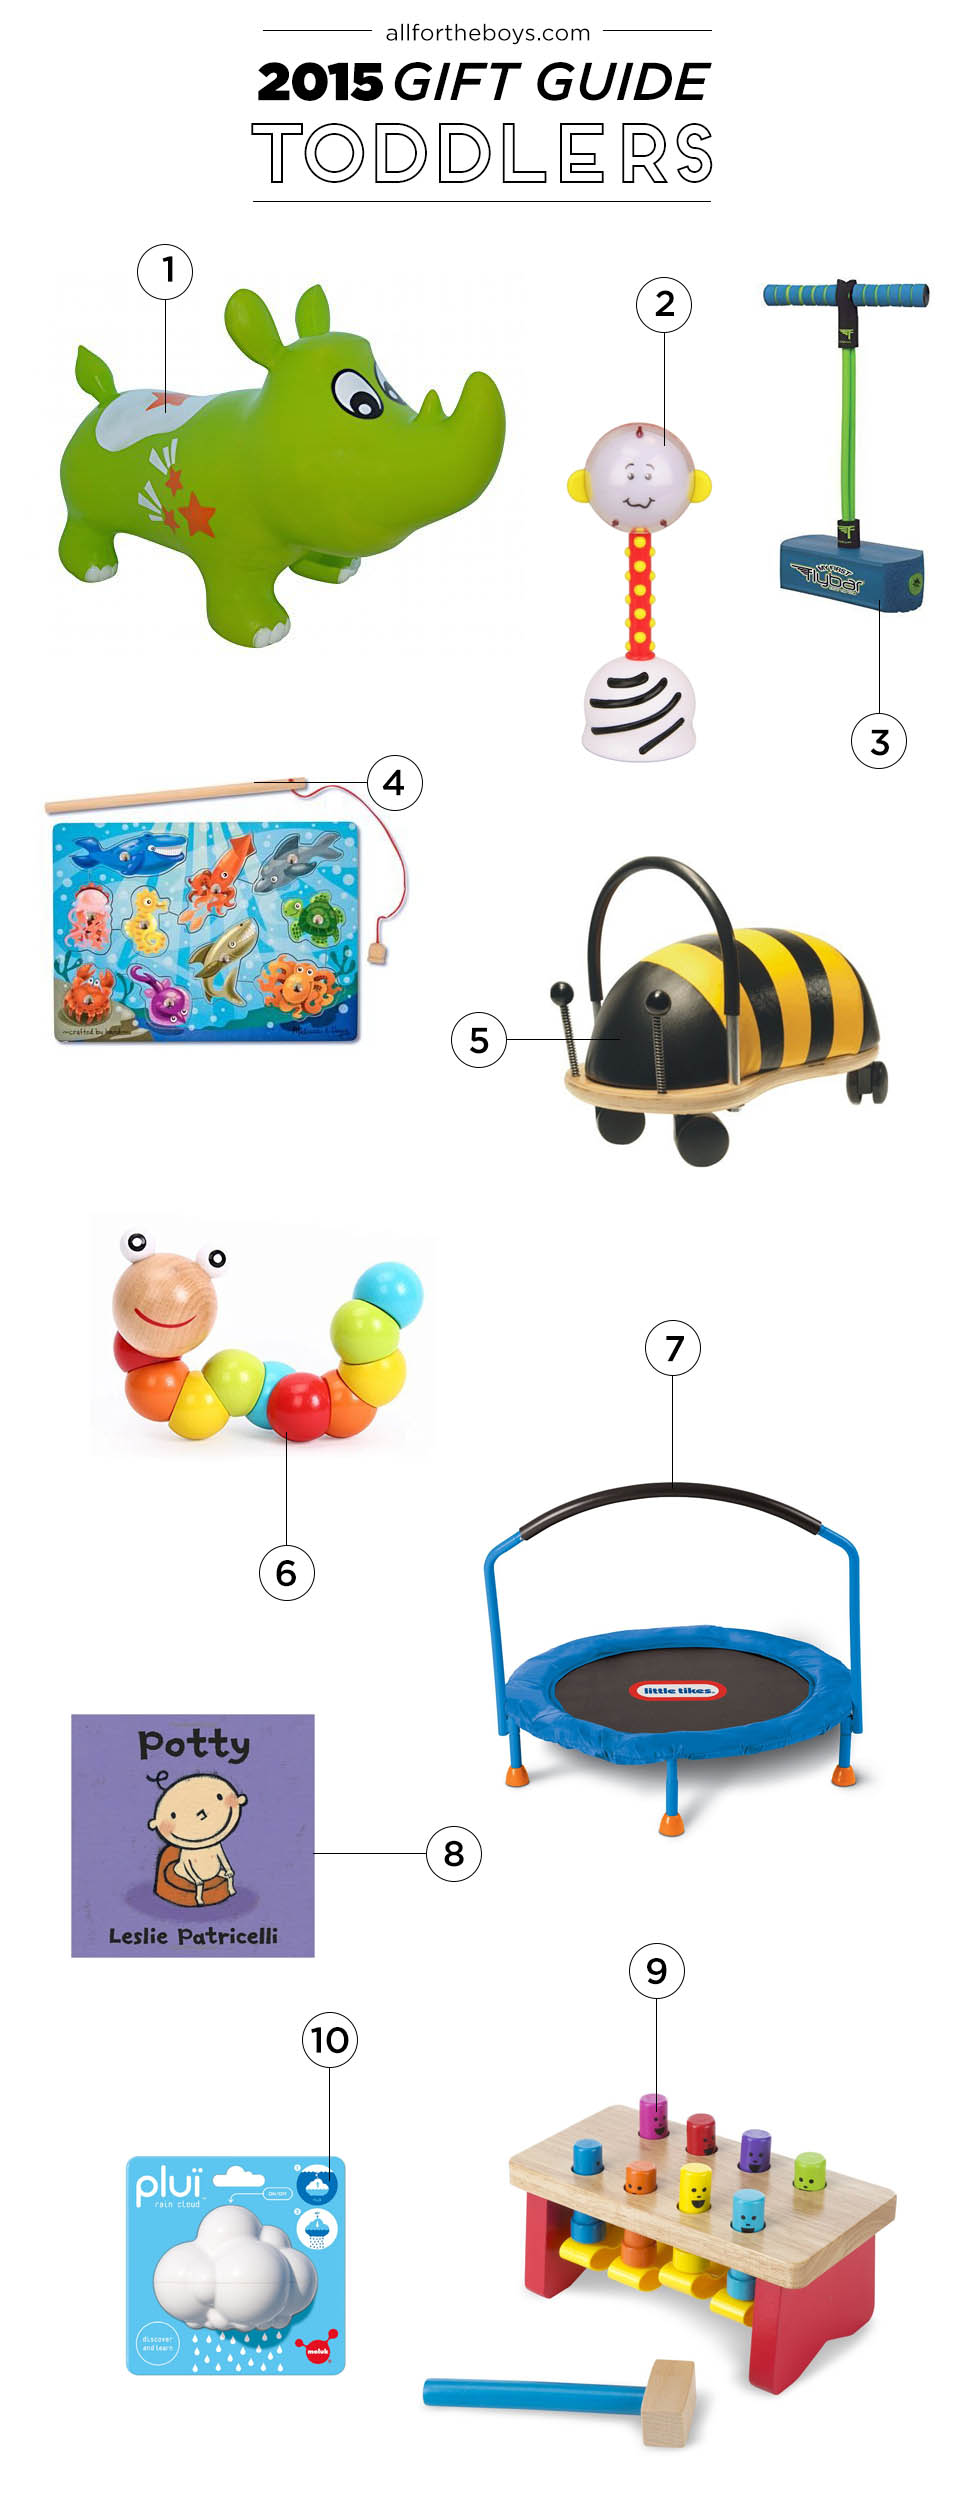 2015 gift guide for toddlers - great ideas!